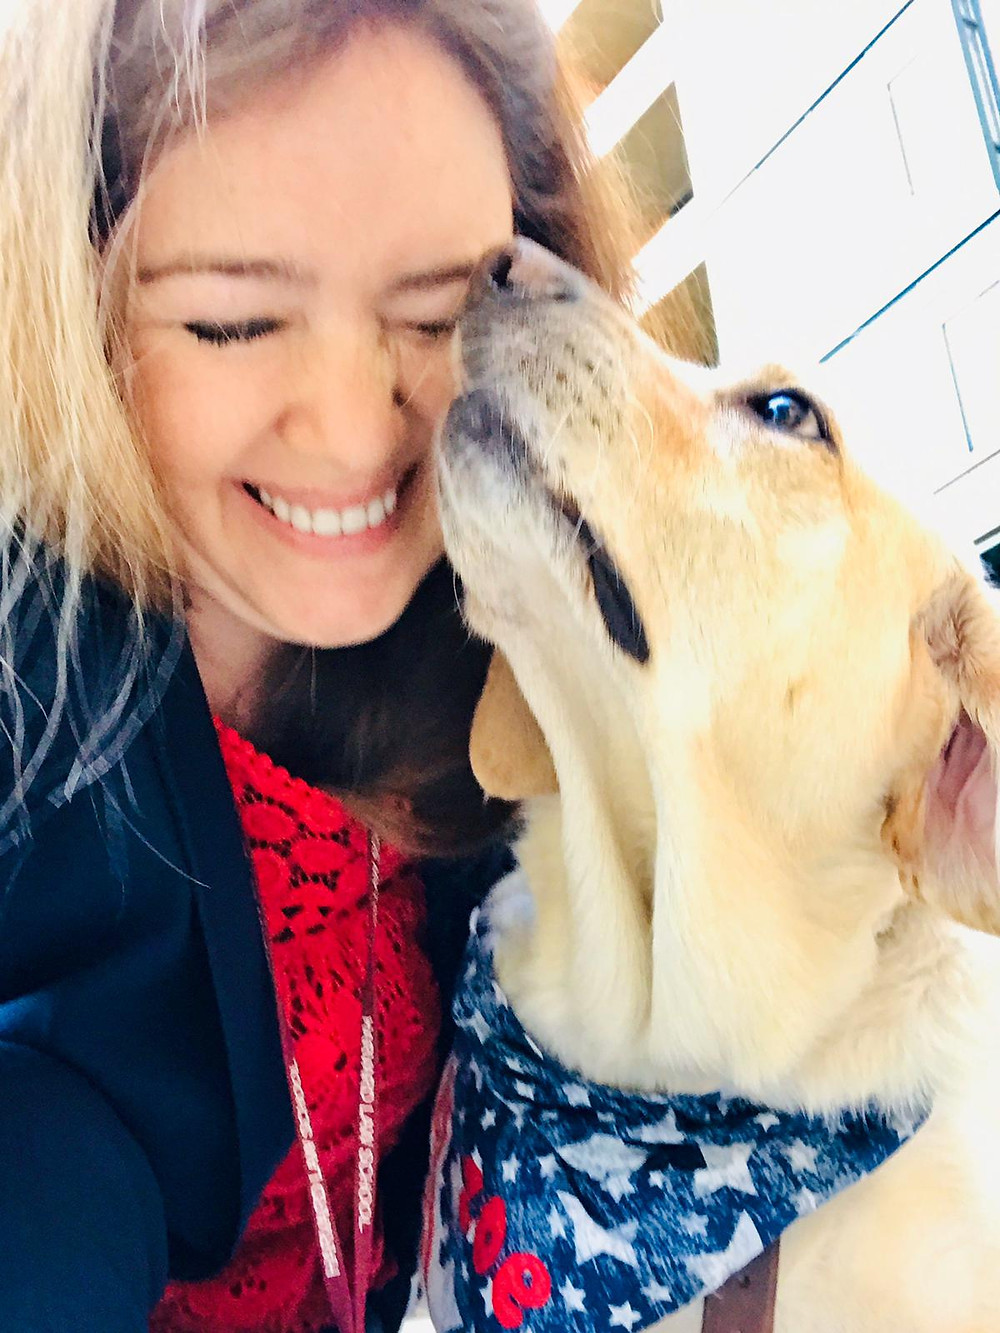 PD: Kristin is smiling and laughing as Zoe nudges her nose up to Kristin's face. Zoe is wearing a festive blue bandana with white stars, and ZOE in red letters.